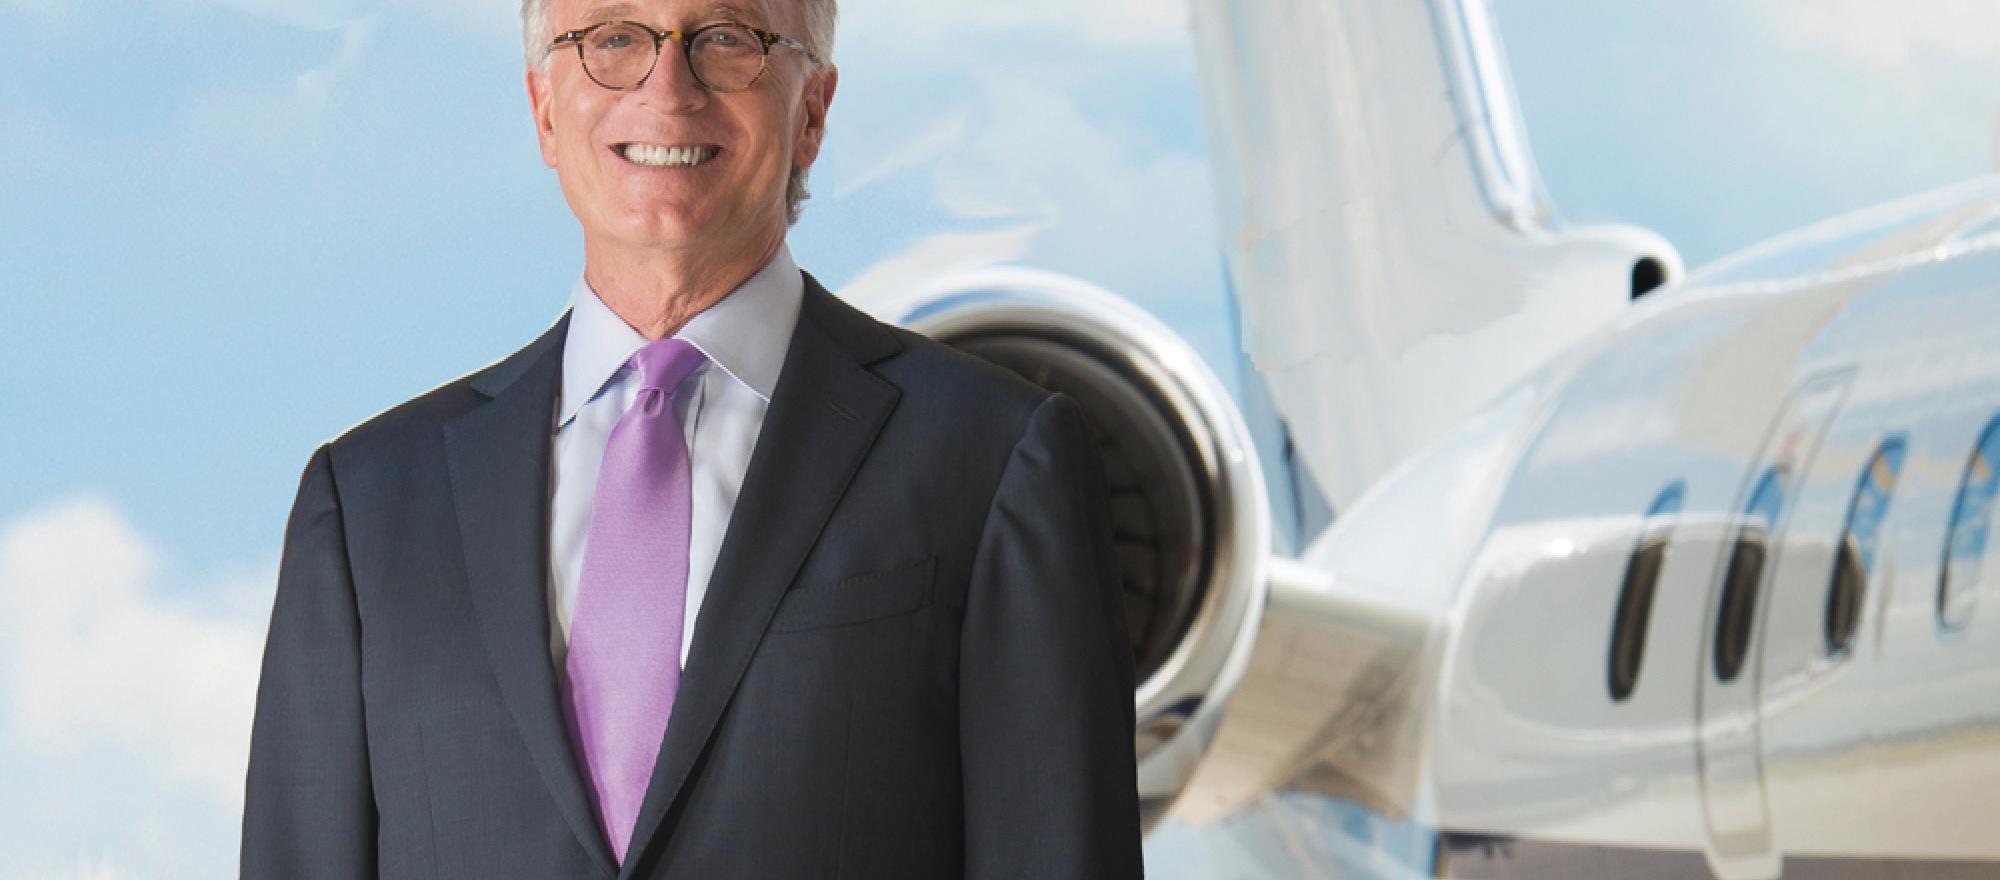 Jay Mesinger, CEO and president, Mesinger Jet Sales